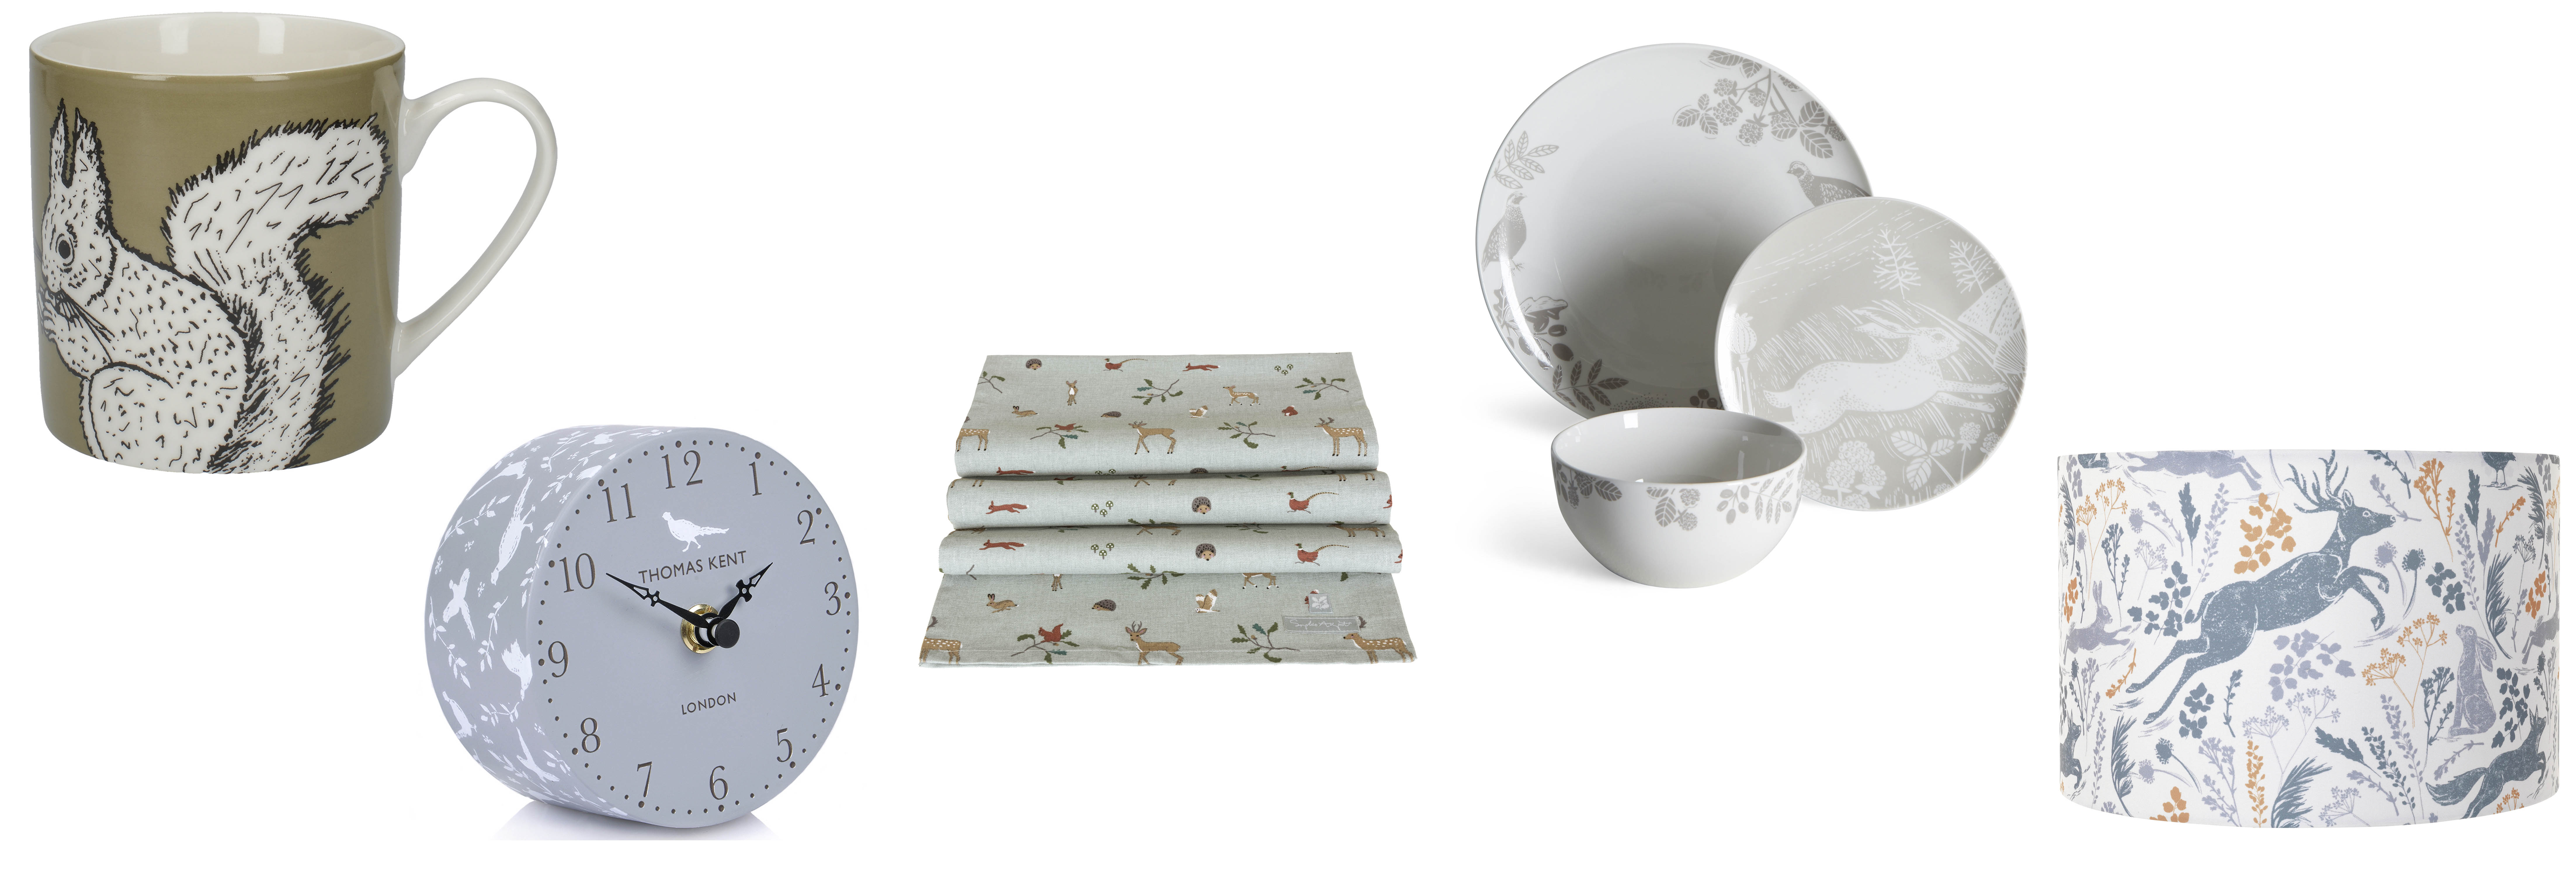 (L-R) Into The Wild Squirrel Mug, £6, visit Creative Tops for stockists; Thomas Kent Clocks, Portobello Pheasant Mantel Clock, £24, Hurn & Hurn; Woodland Table Runner, £22, Sophie Allport; Woodland 12-Piece Taupe Dinner Set, £31, Dunelm; Sainsbury's Home Rural Retreat Animal Printed Shade, £12 (Creative Tops/Hurn & Hurn/Sophie Allport; Dunelm/Sainsbury's Home/PA)